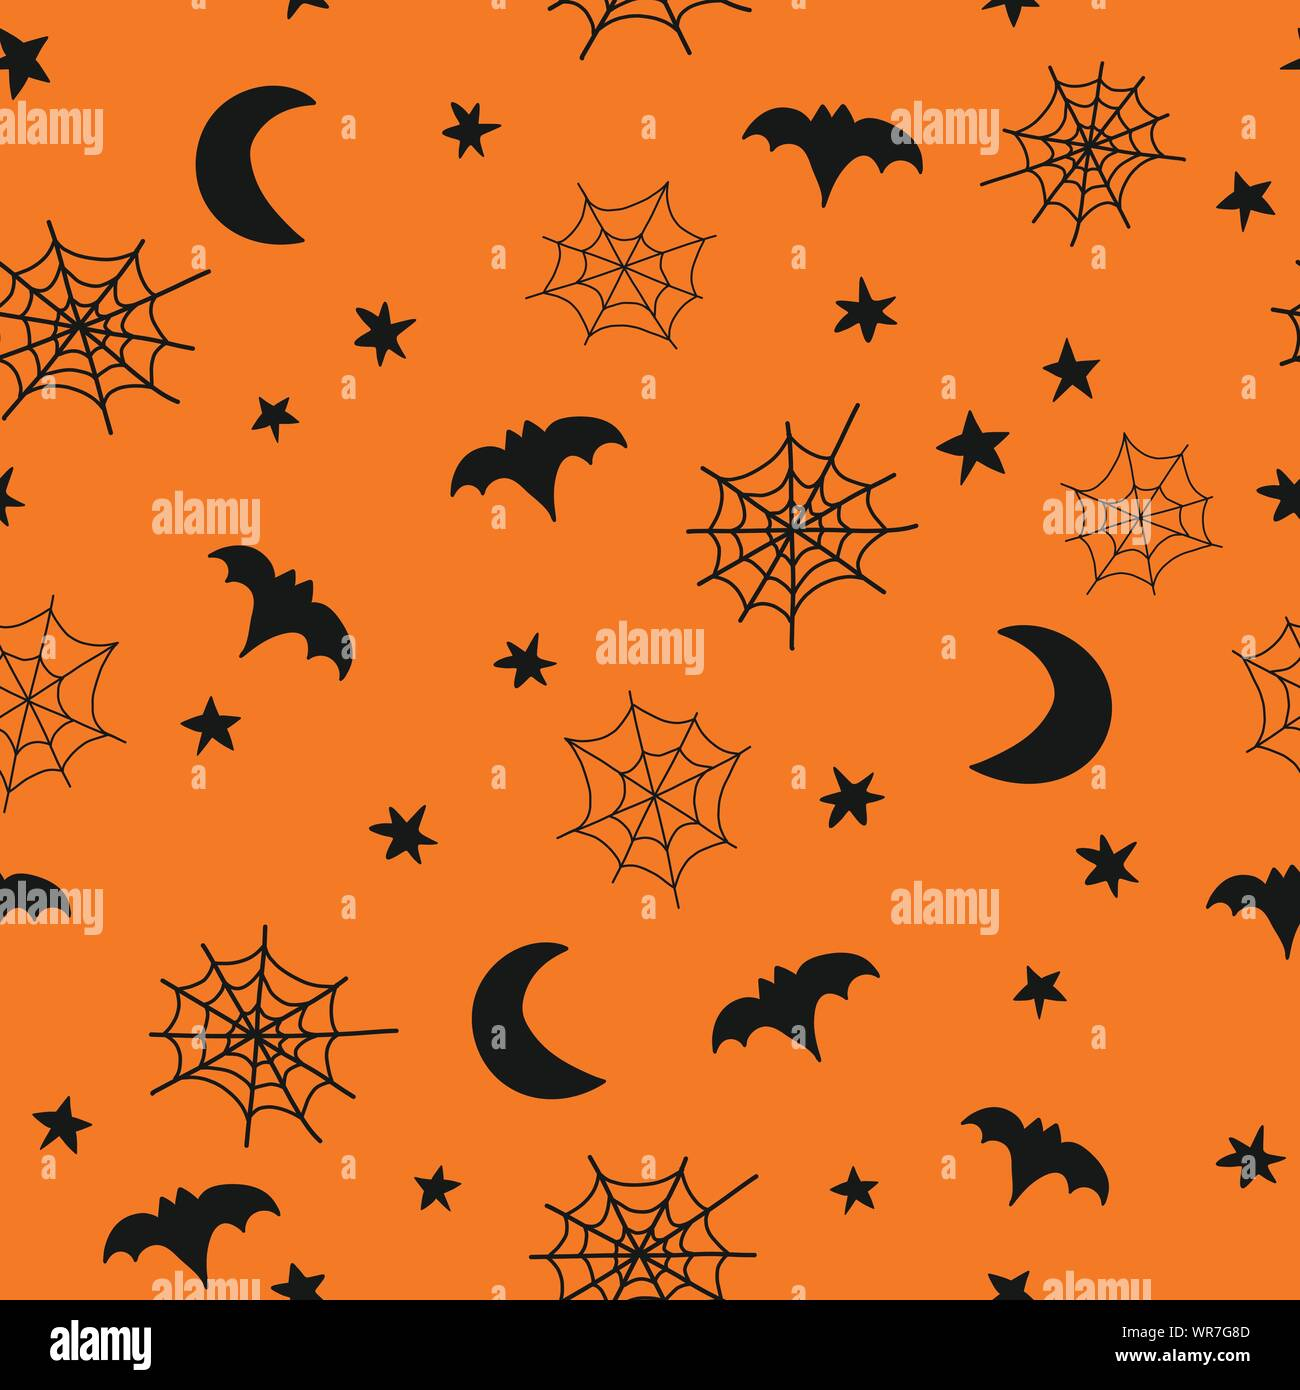 Seamless Vector Halloween Background Pattern With Hand Drawn Spider Webs Bats Moon Stars Cute Halloween Illustration Orange Black For Fabric Stock Vector Image Art Alamy